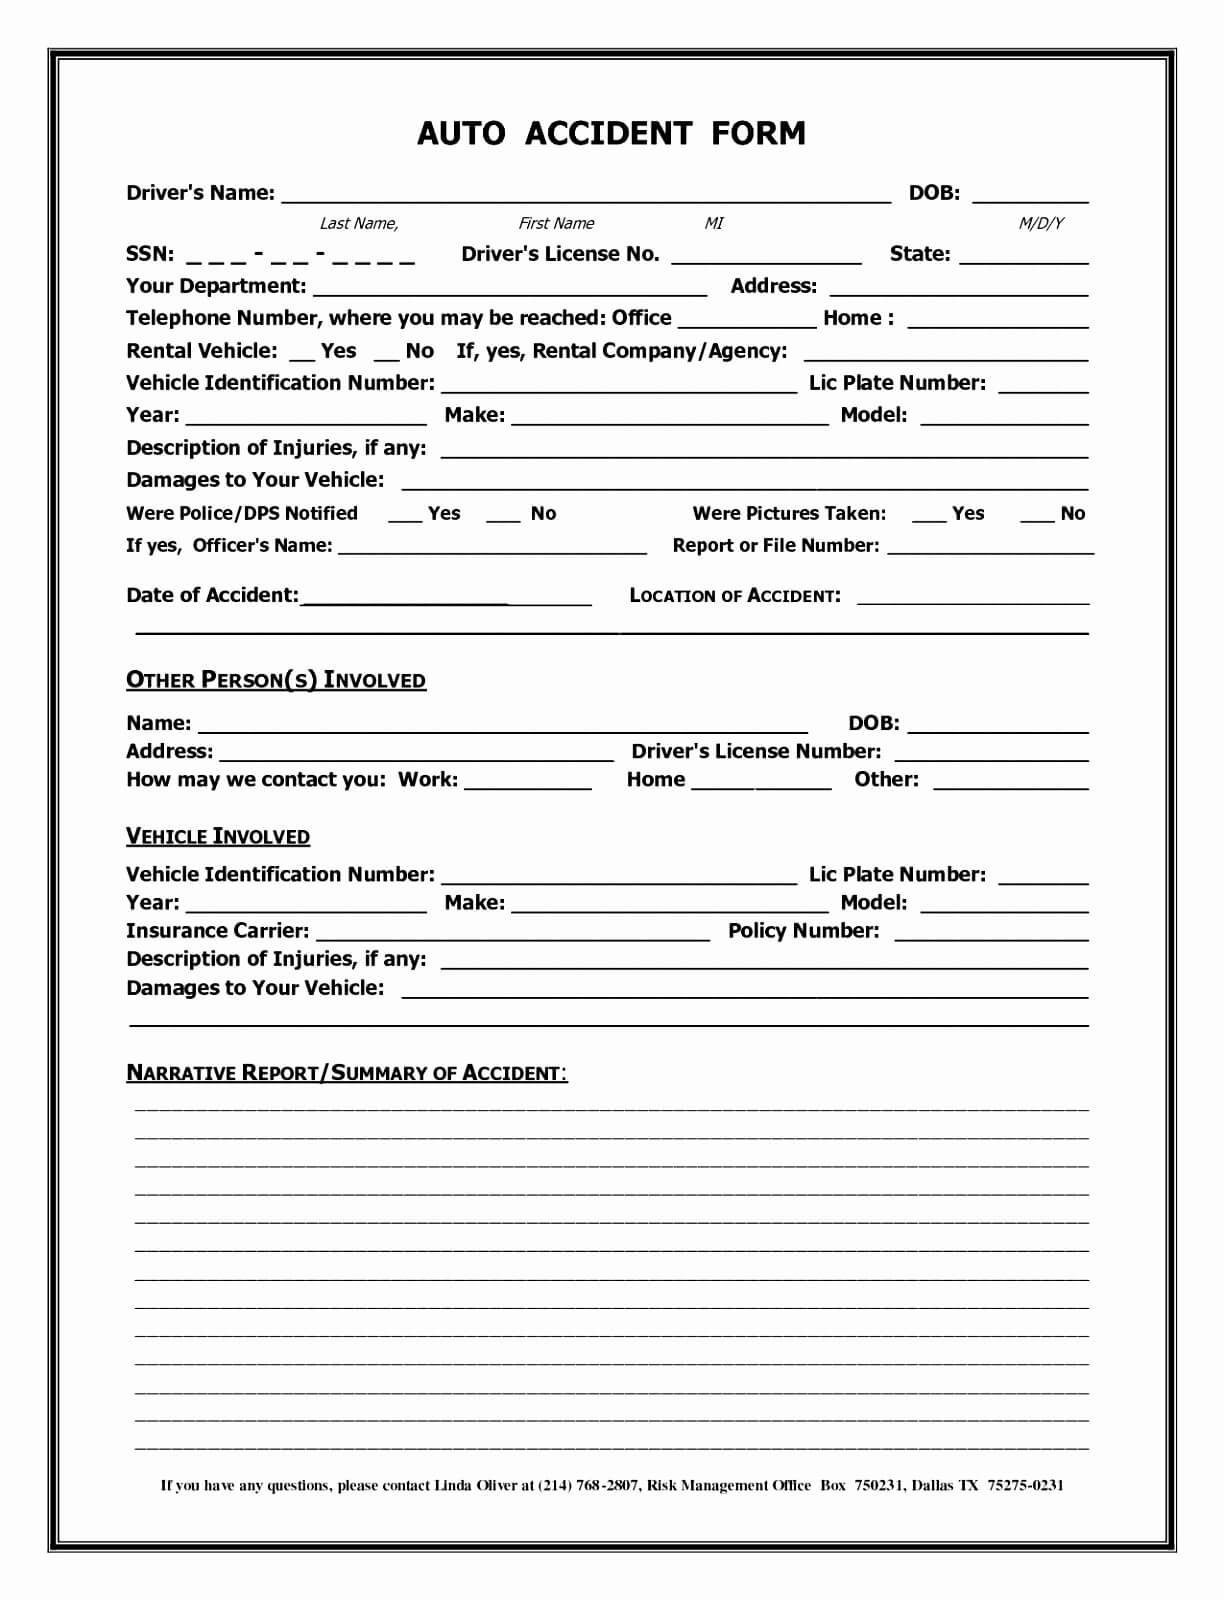 007 Accident Report Forms Template Auto Form California With Accident Report Form Template Uk